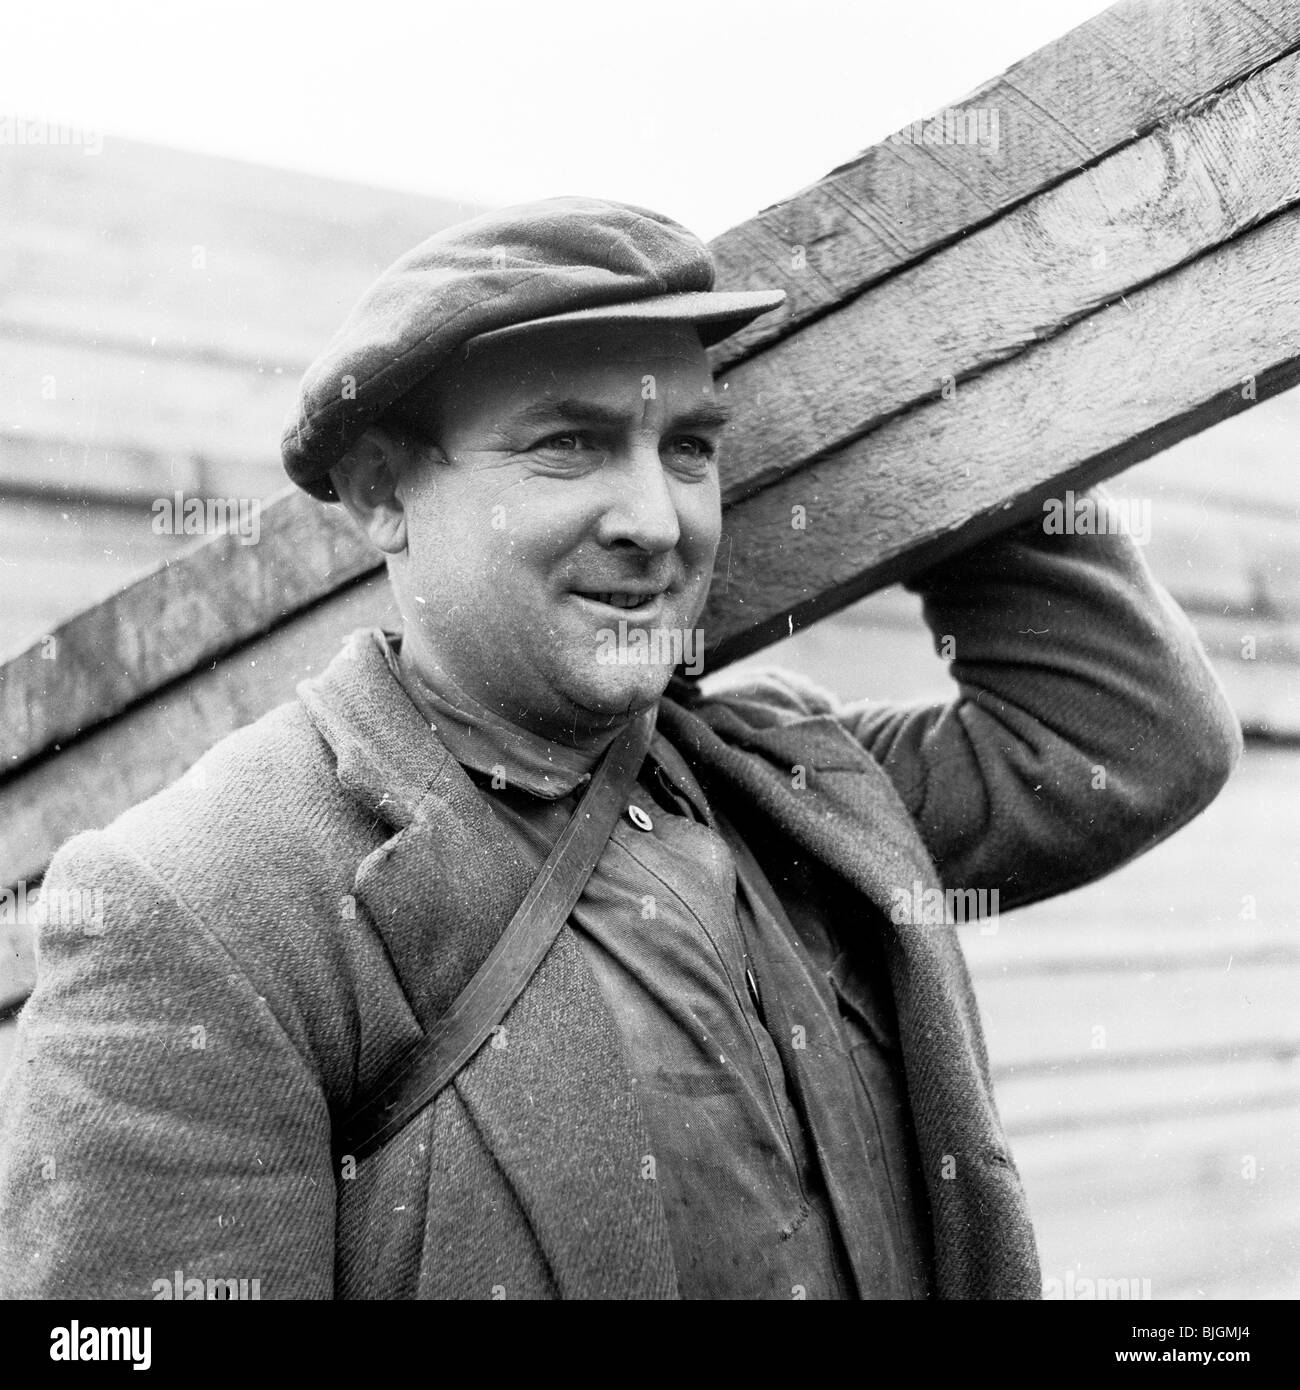 England,  1950s. Close-up of a worker for the London Brick Company, wearing a jacket and cap, carrying three planks - Stock Image